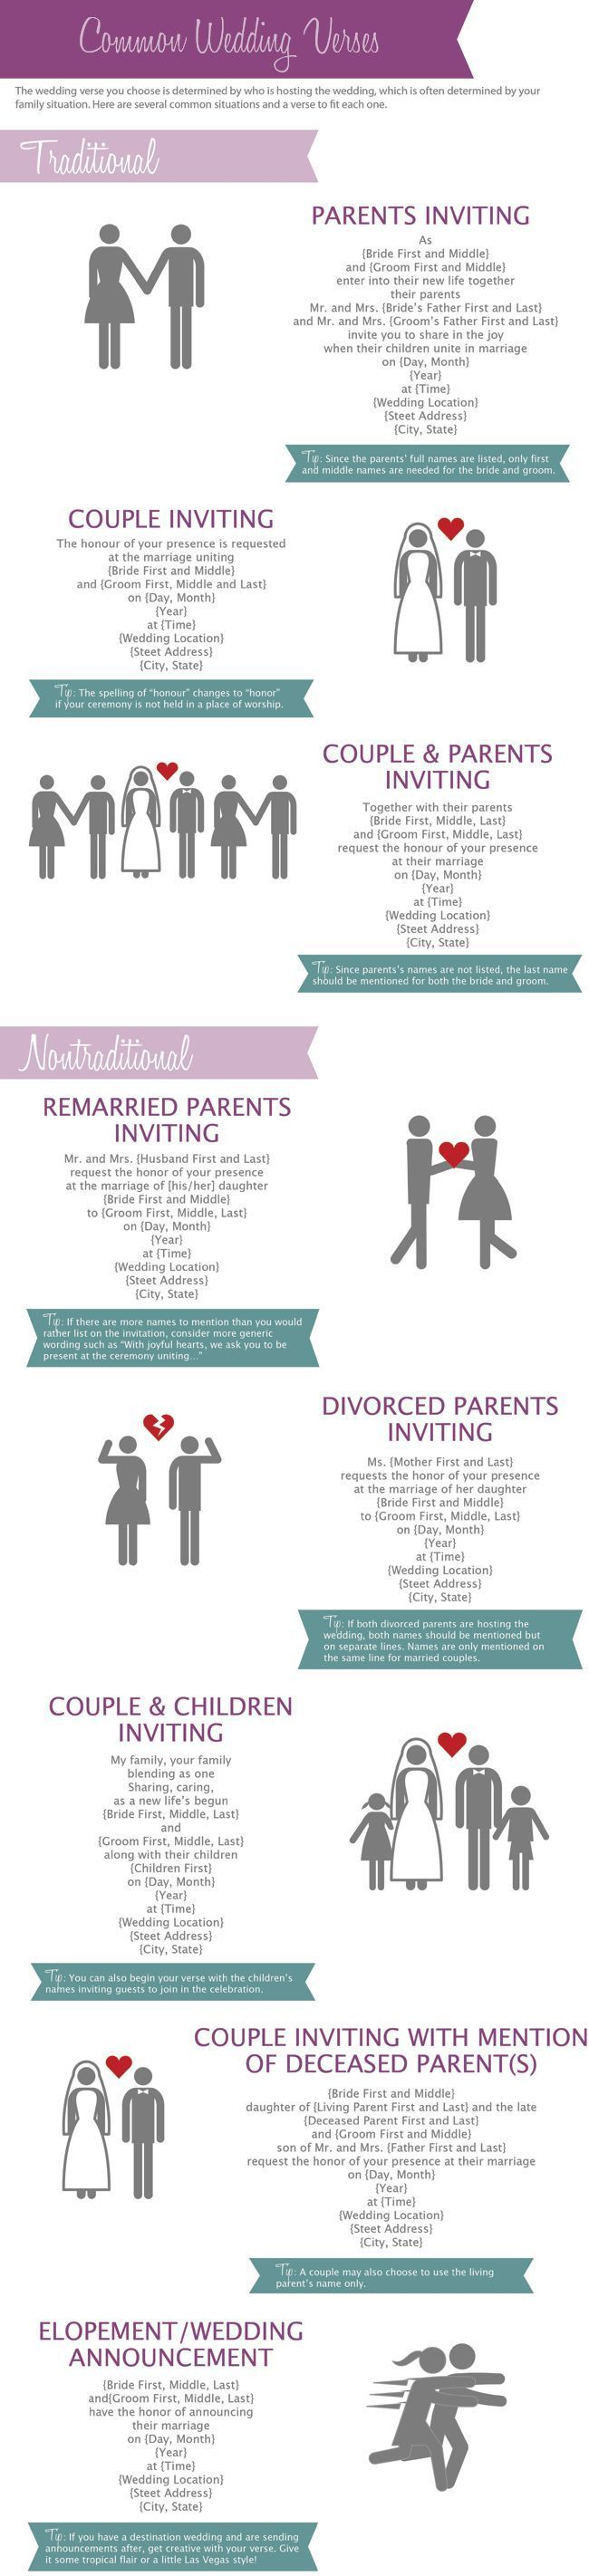 how to word your wedding invitation depending on who's inviting - for more advice on wording your wedding invitations visit http://www.bemyguest.co.nz/product/wedding-invitation-wording-guide/